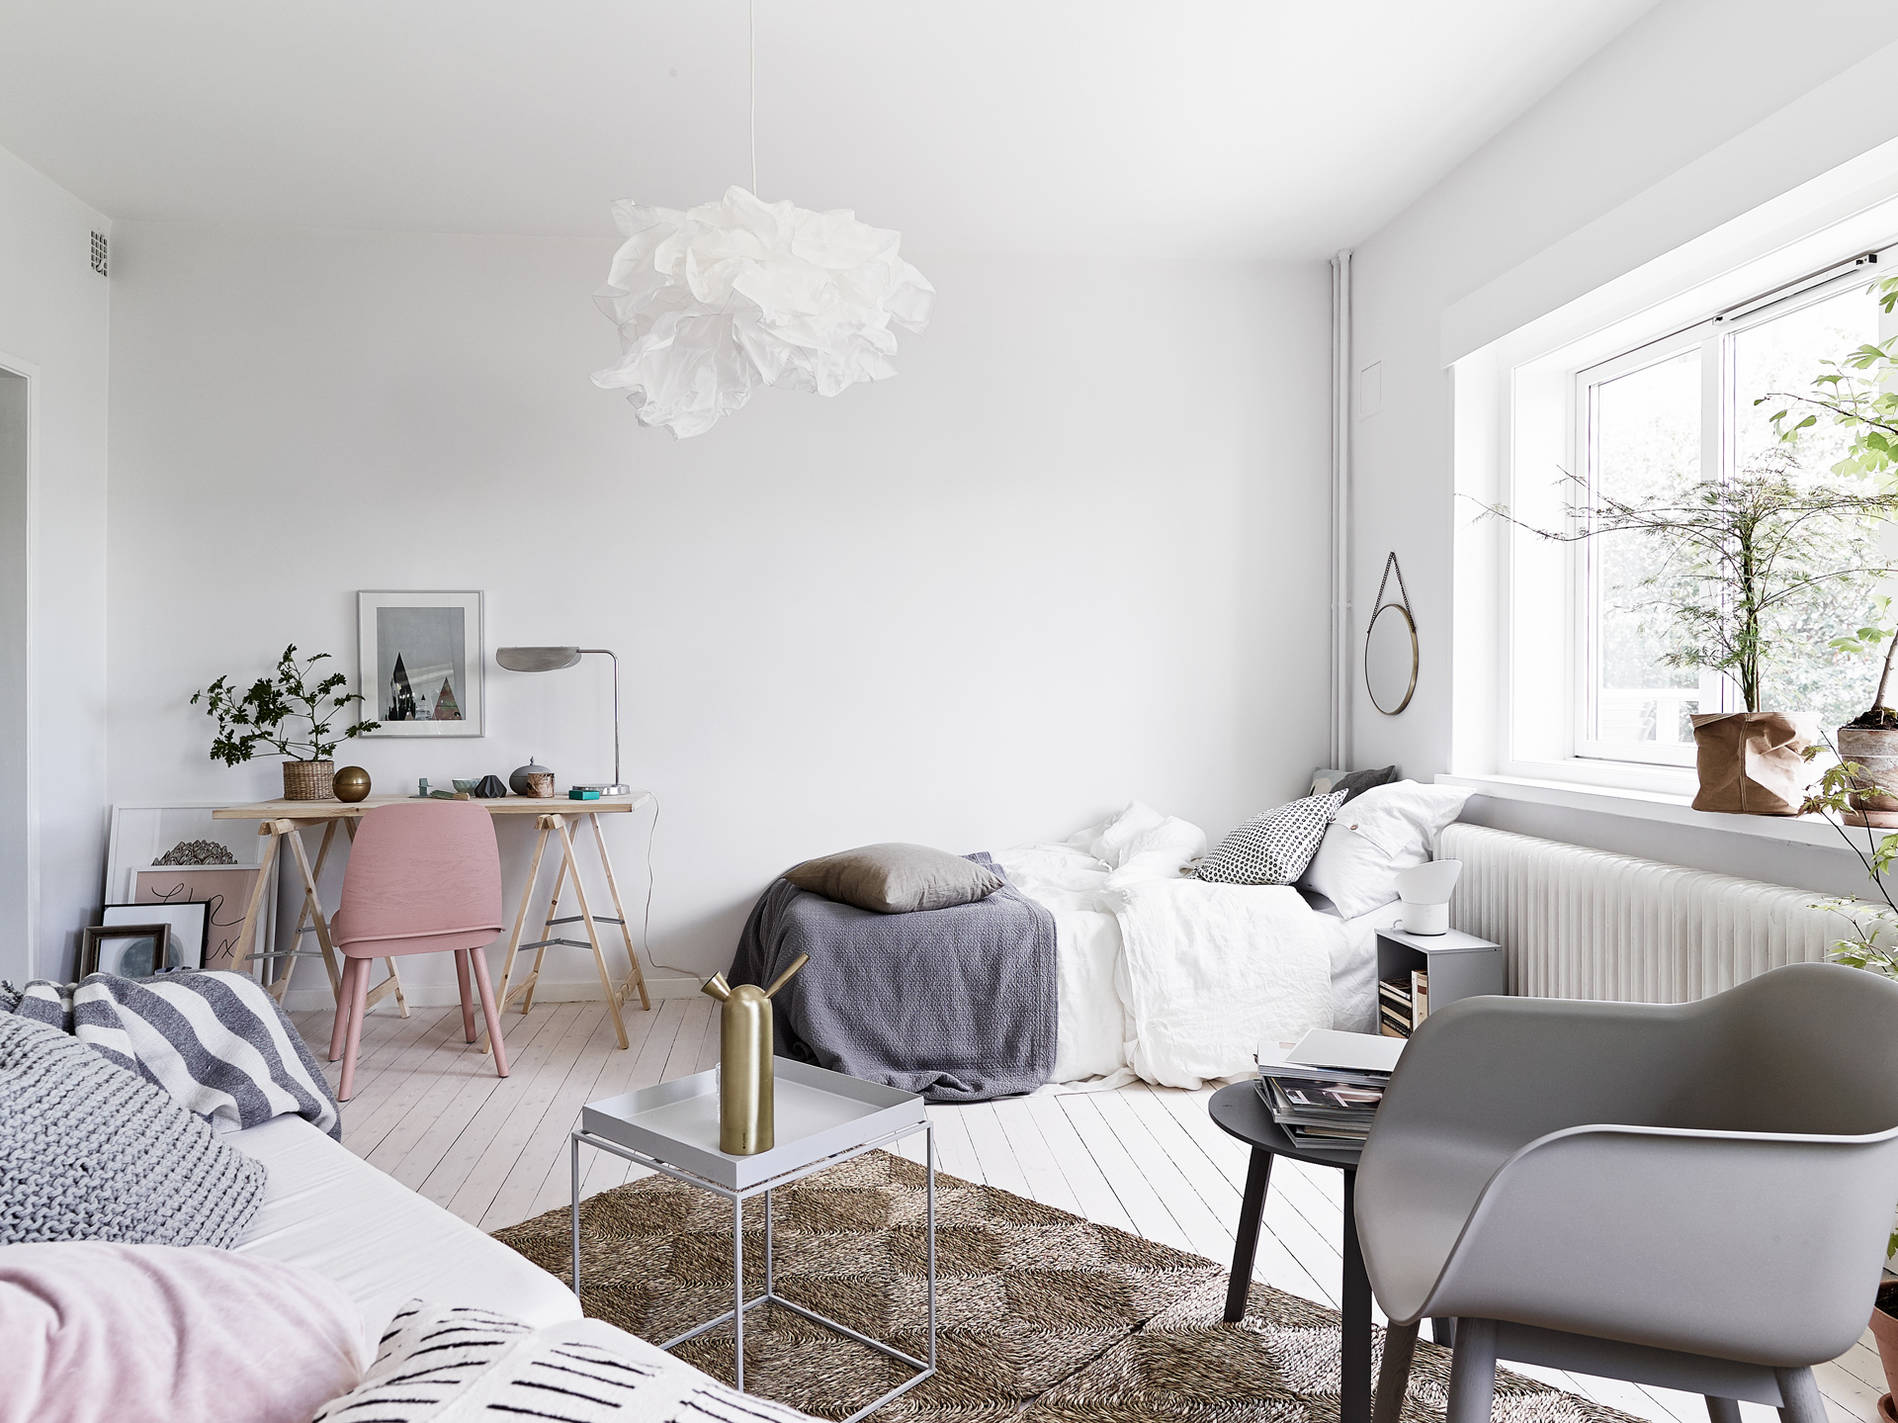 Cozy And Light Coco Lapine Designcoco Lapine Design